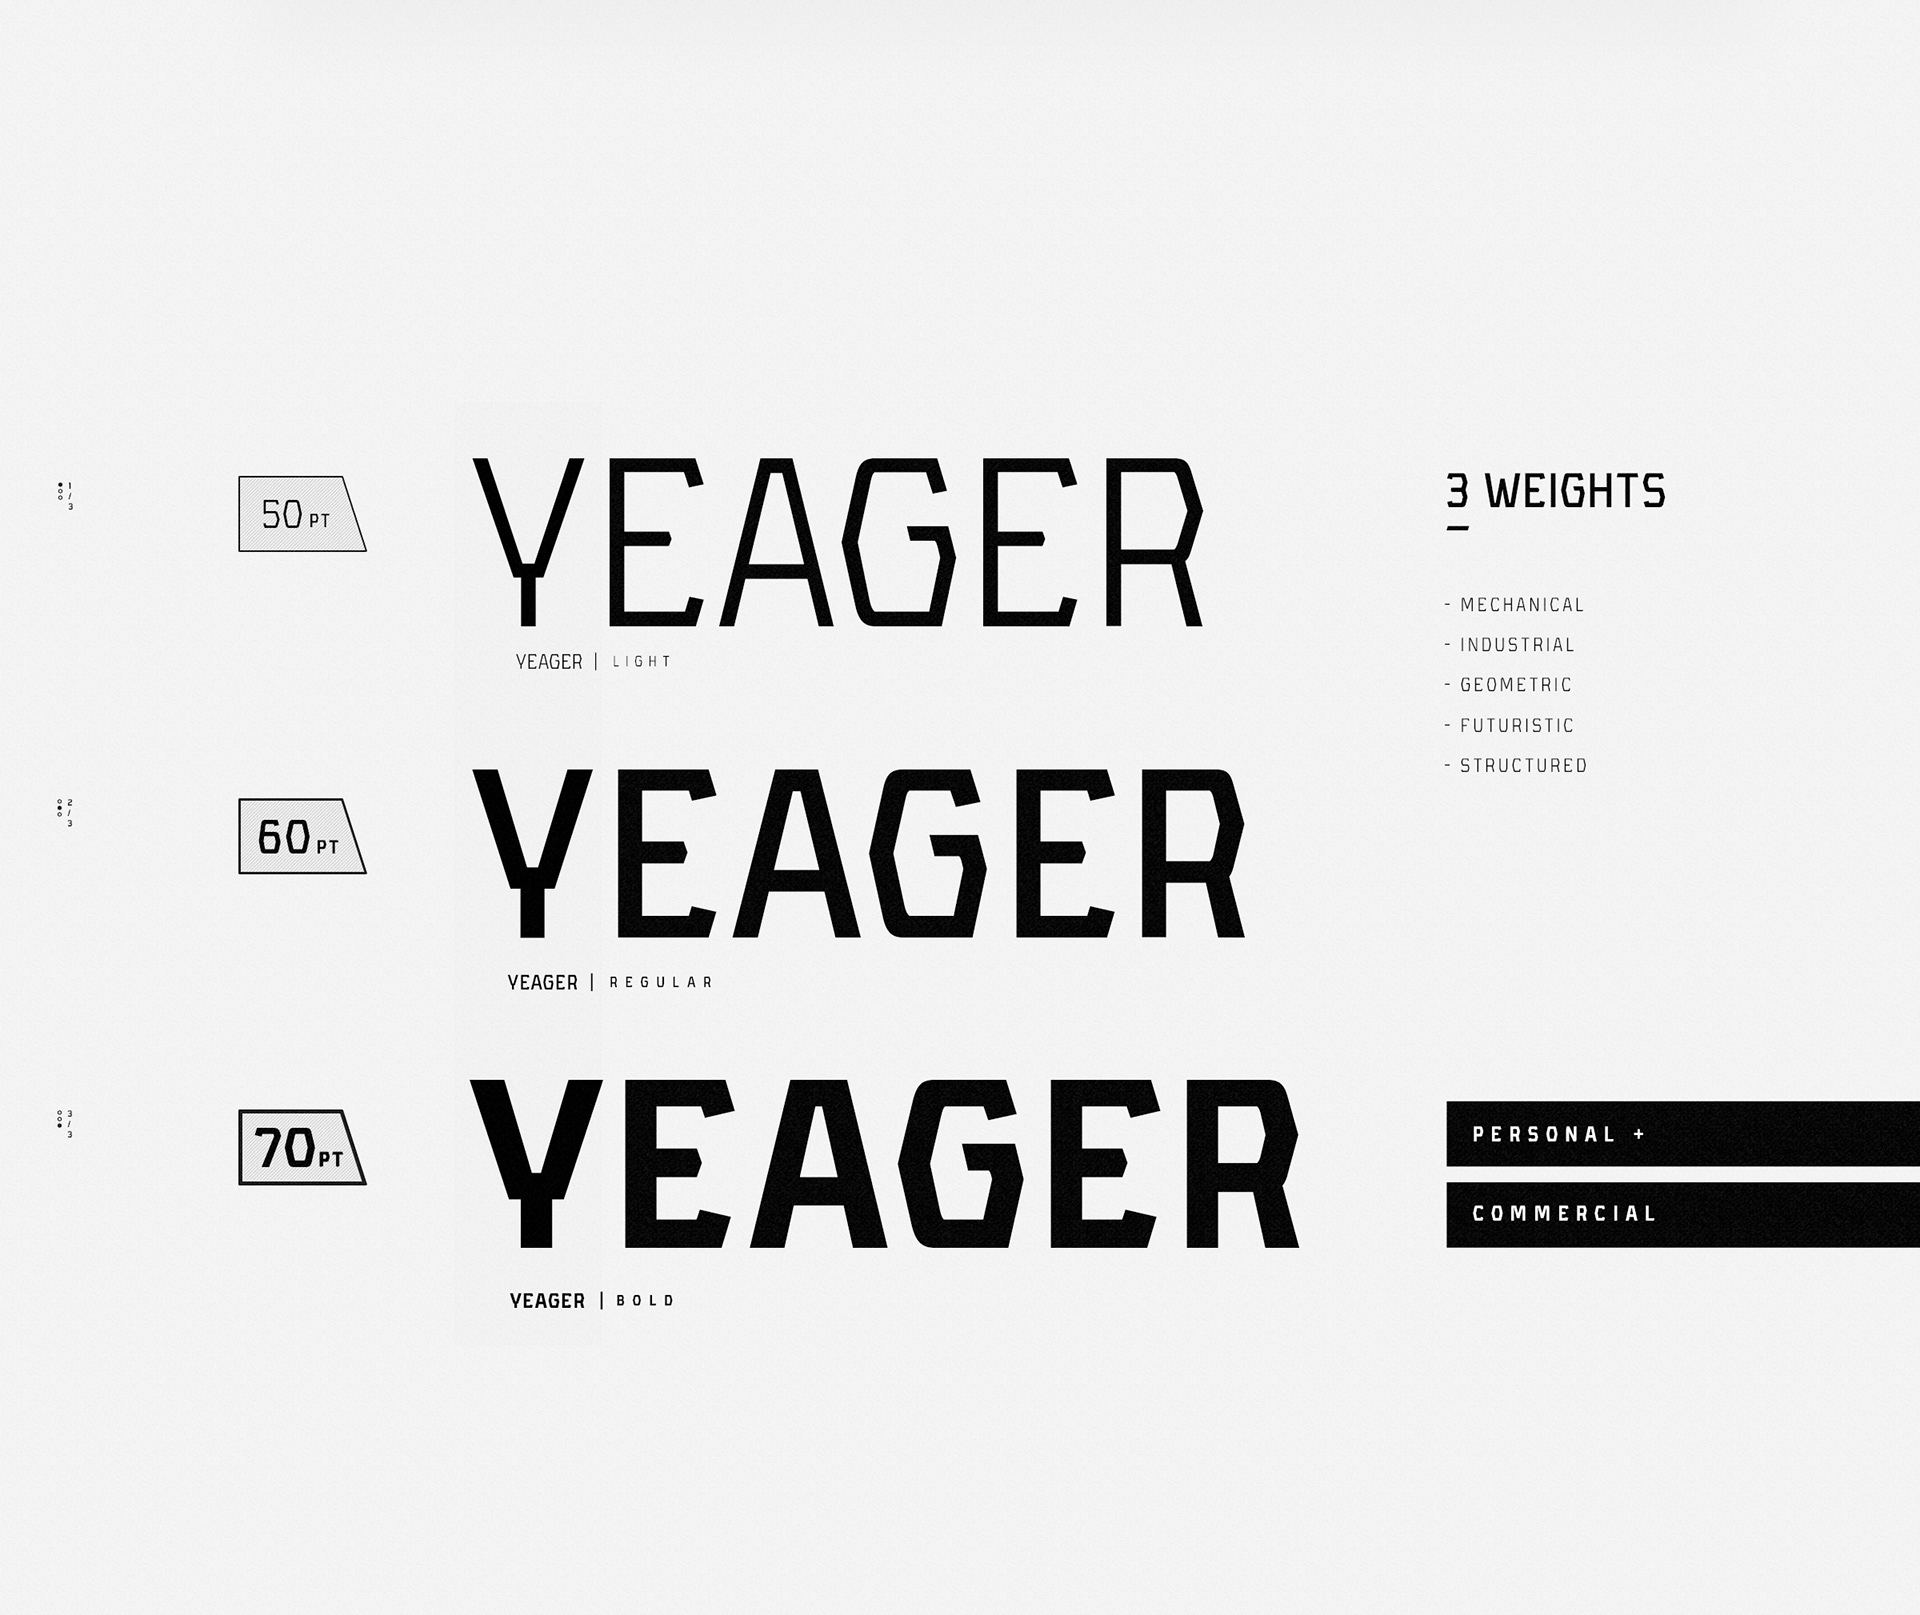 https://www.jeremynelsondesign.com/case-studies/yeager